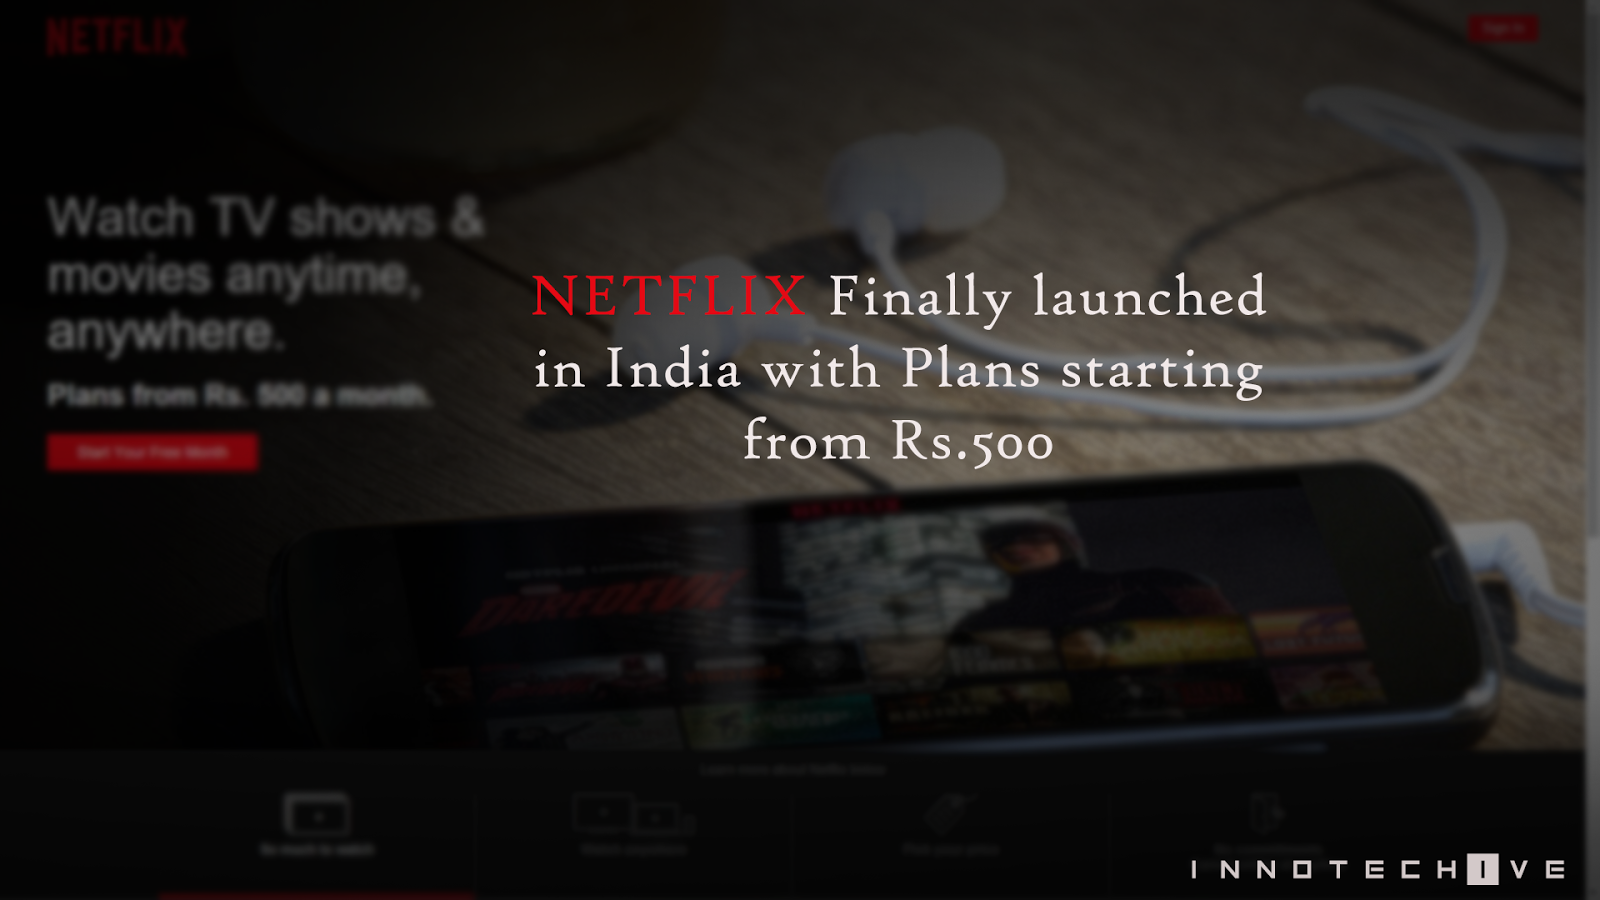 Netflix-launch-India-Plan-banner